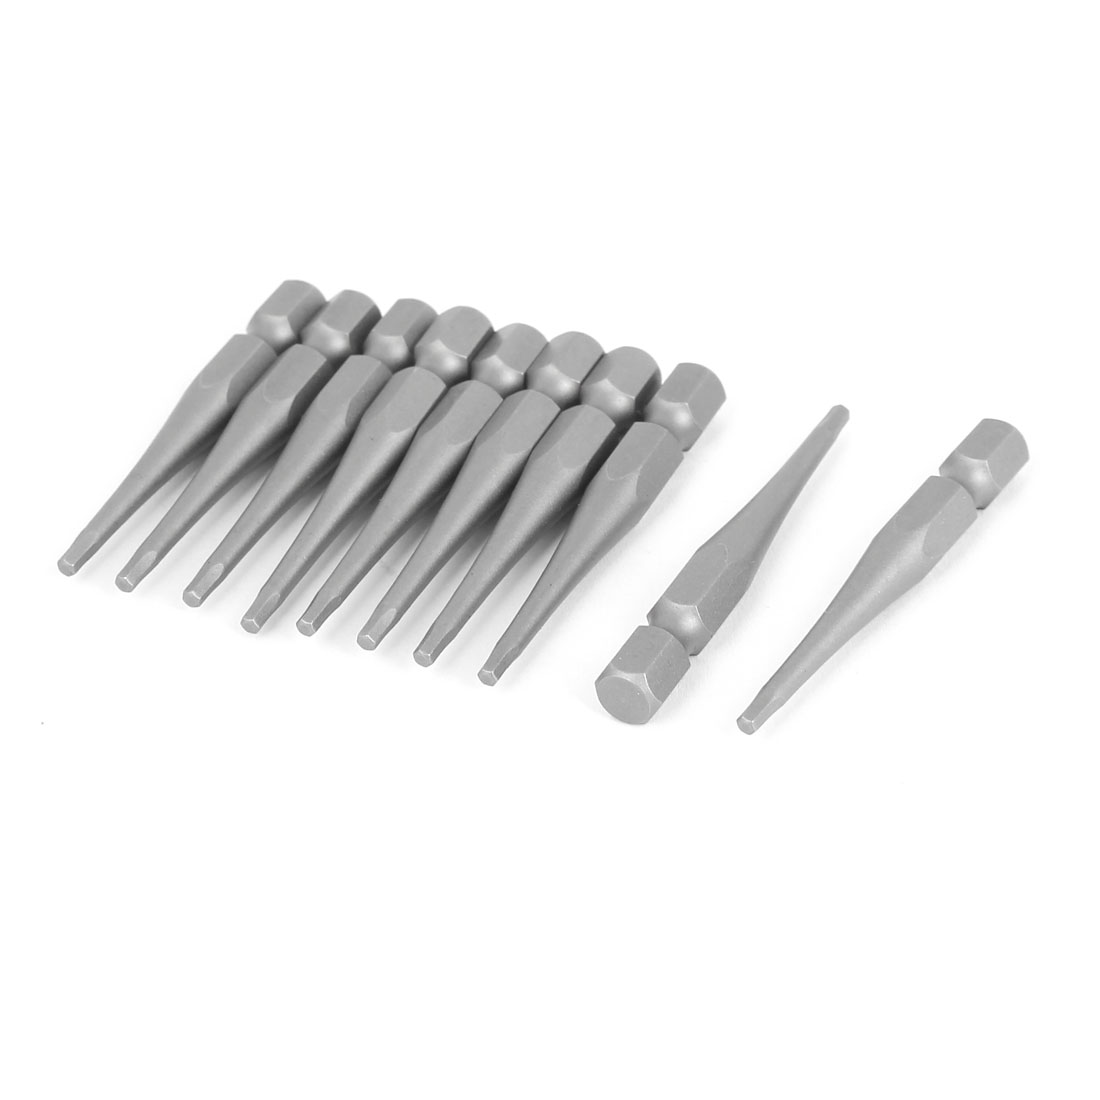 10 Pcs 50mm Length 2mm Tip Hex Shank Magnetic Hexagon Screwdriver Bit Gray